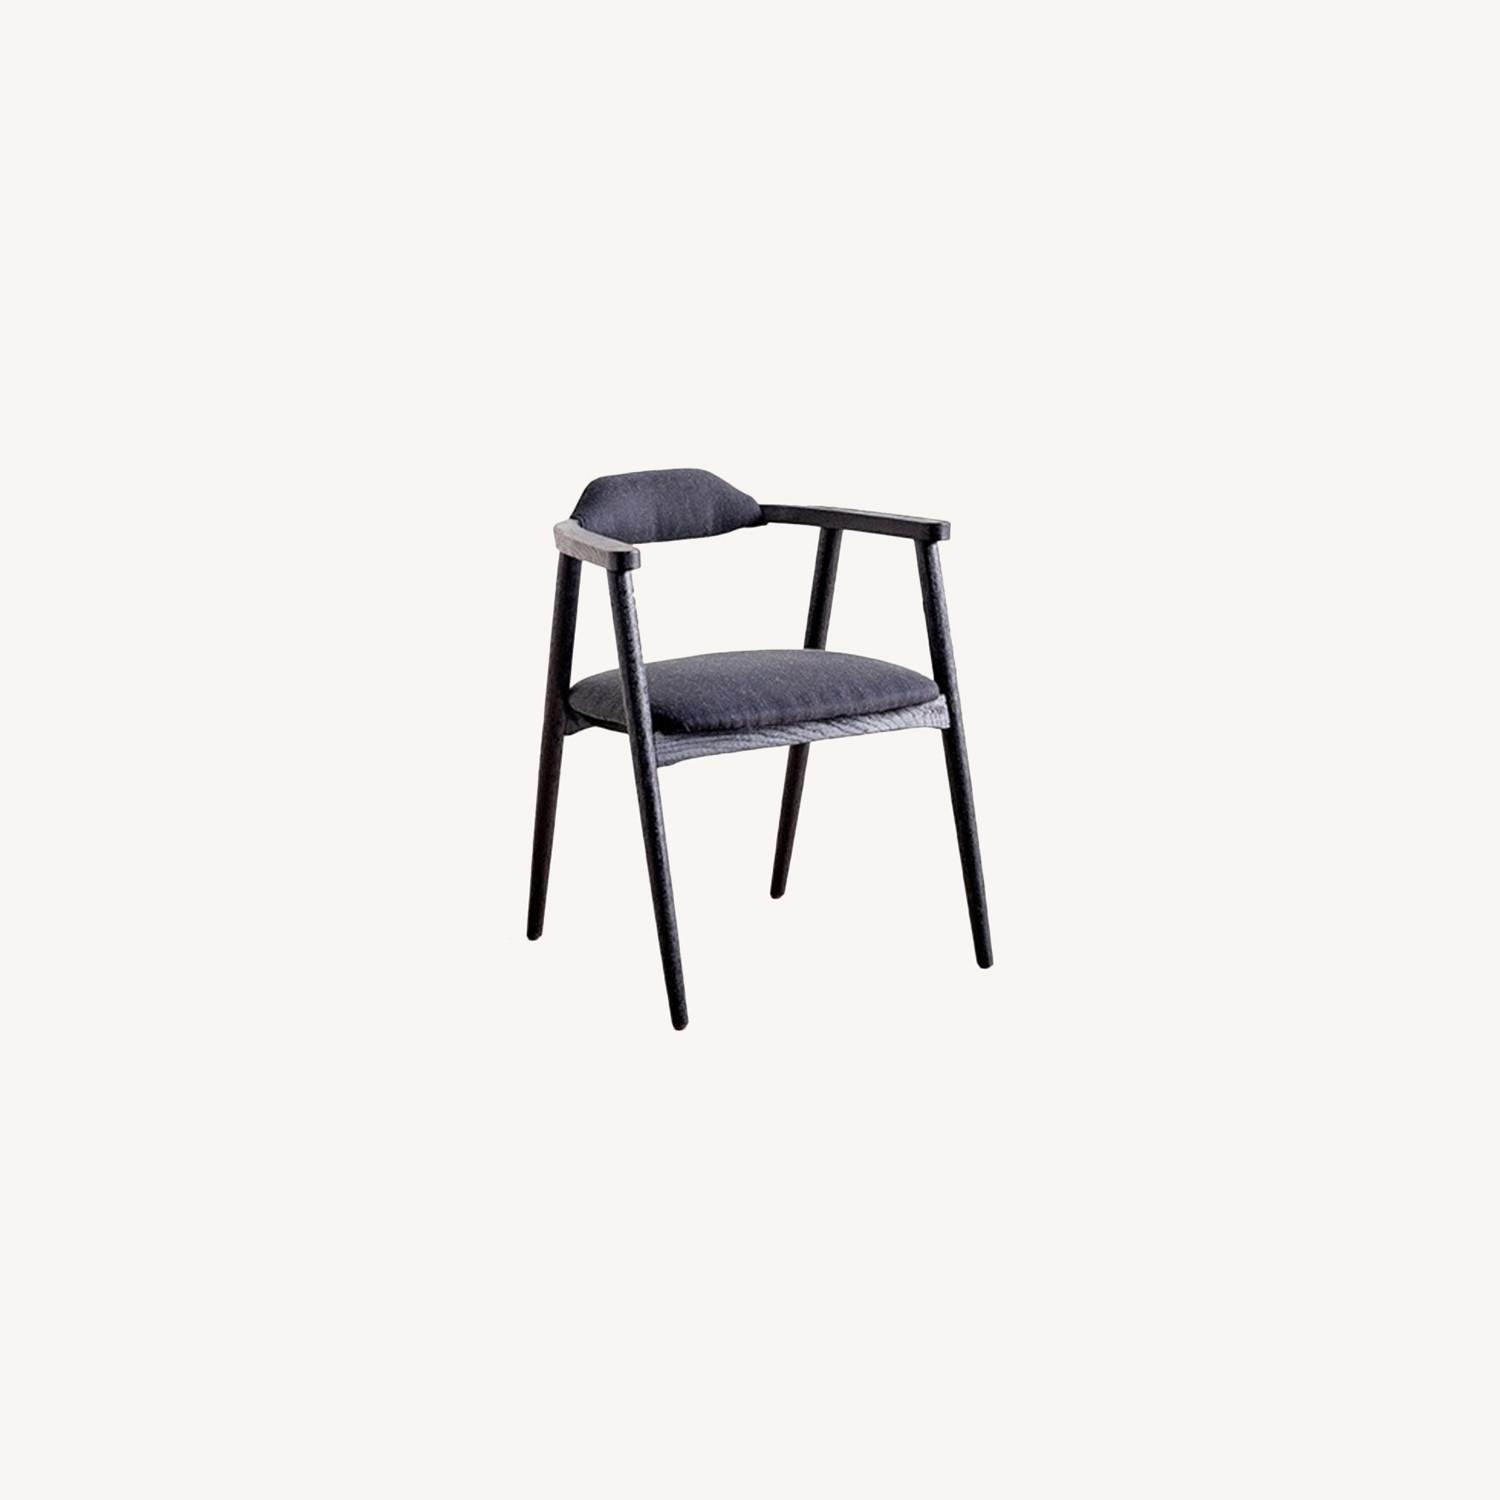 LH Imports Finch Chair - image-0